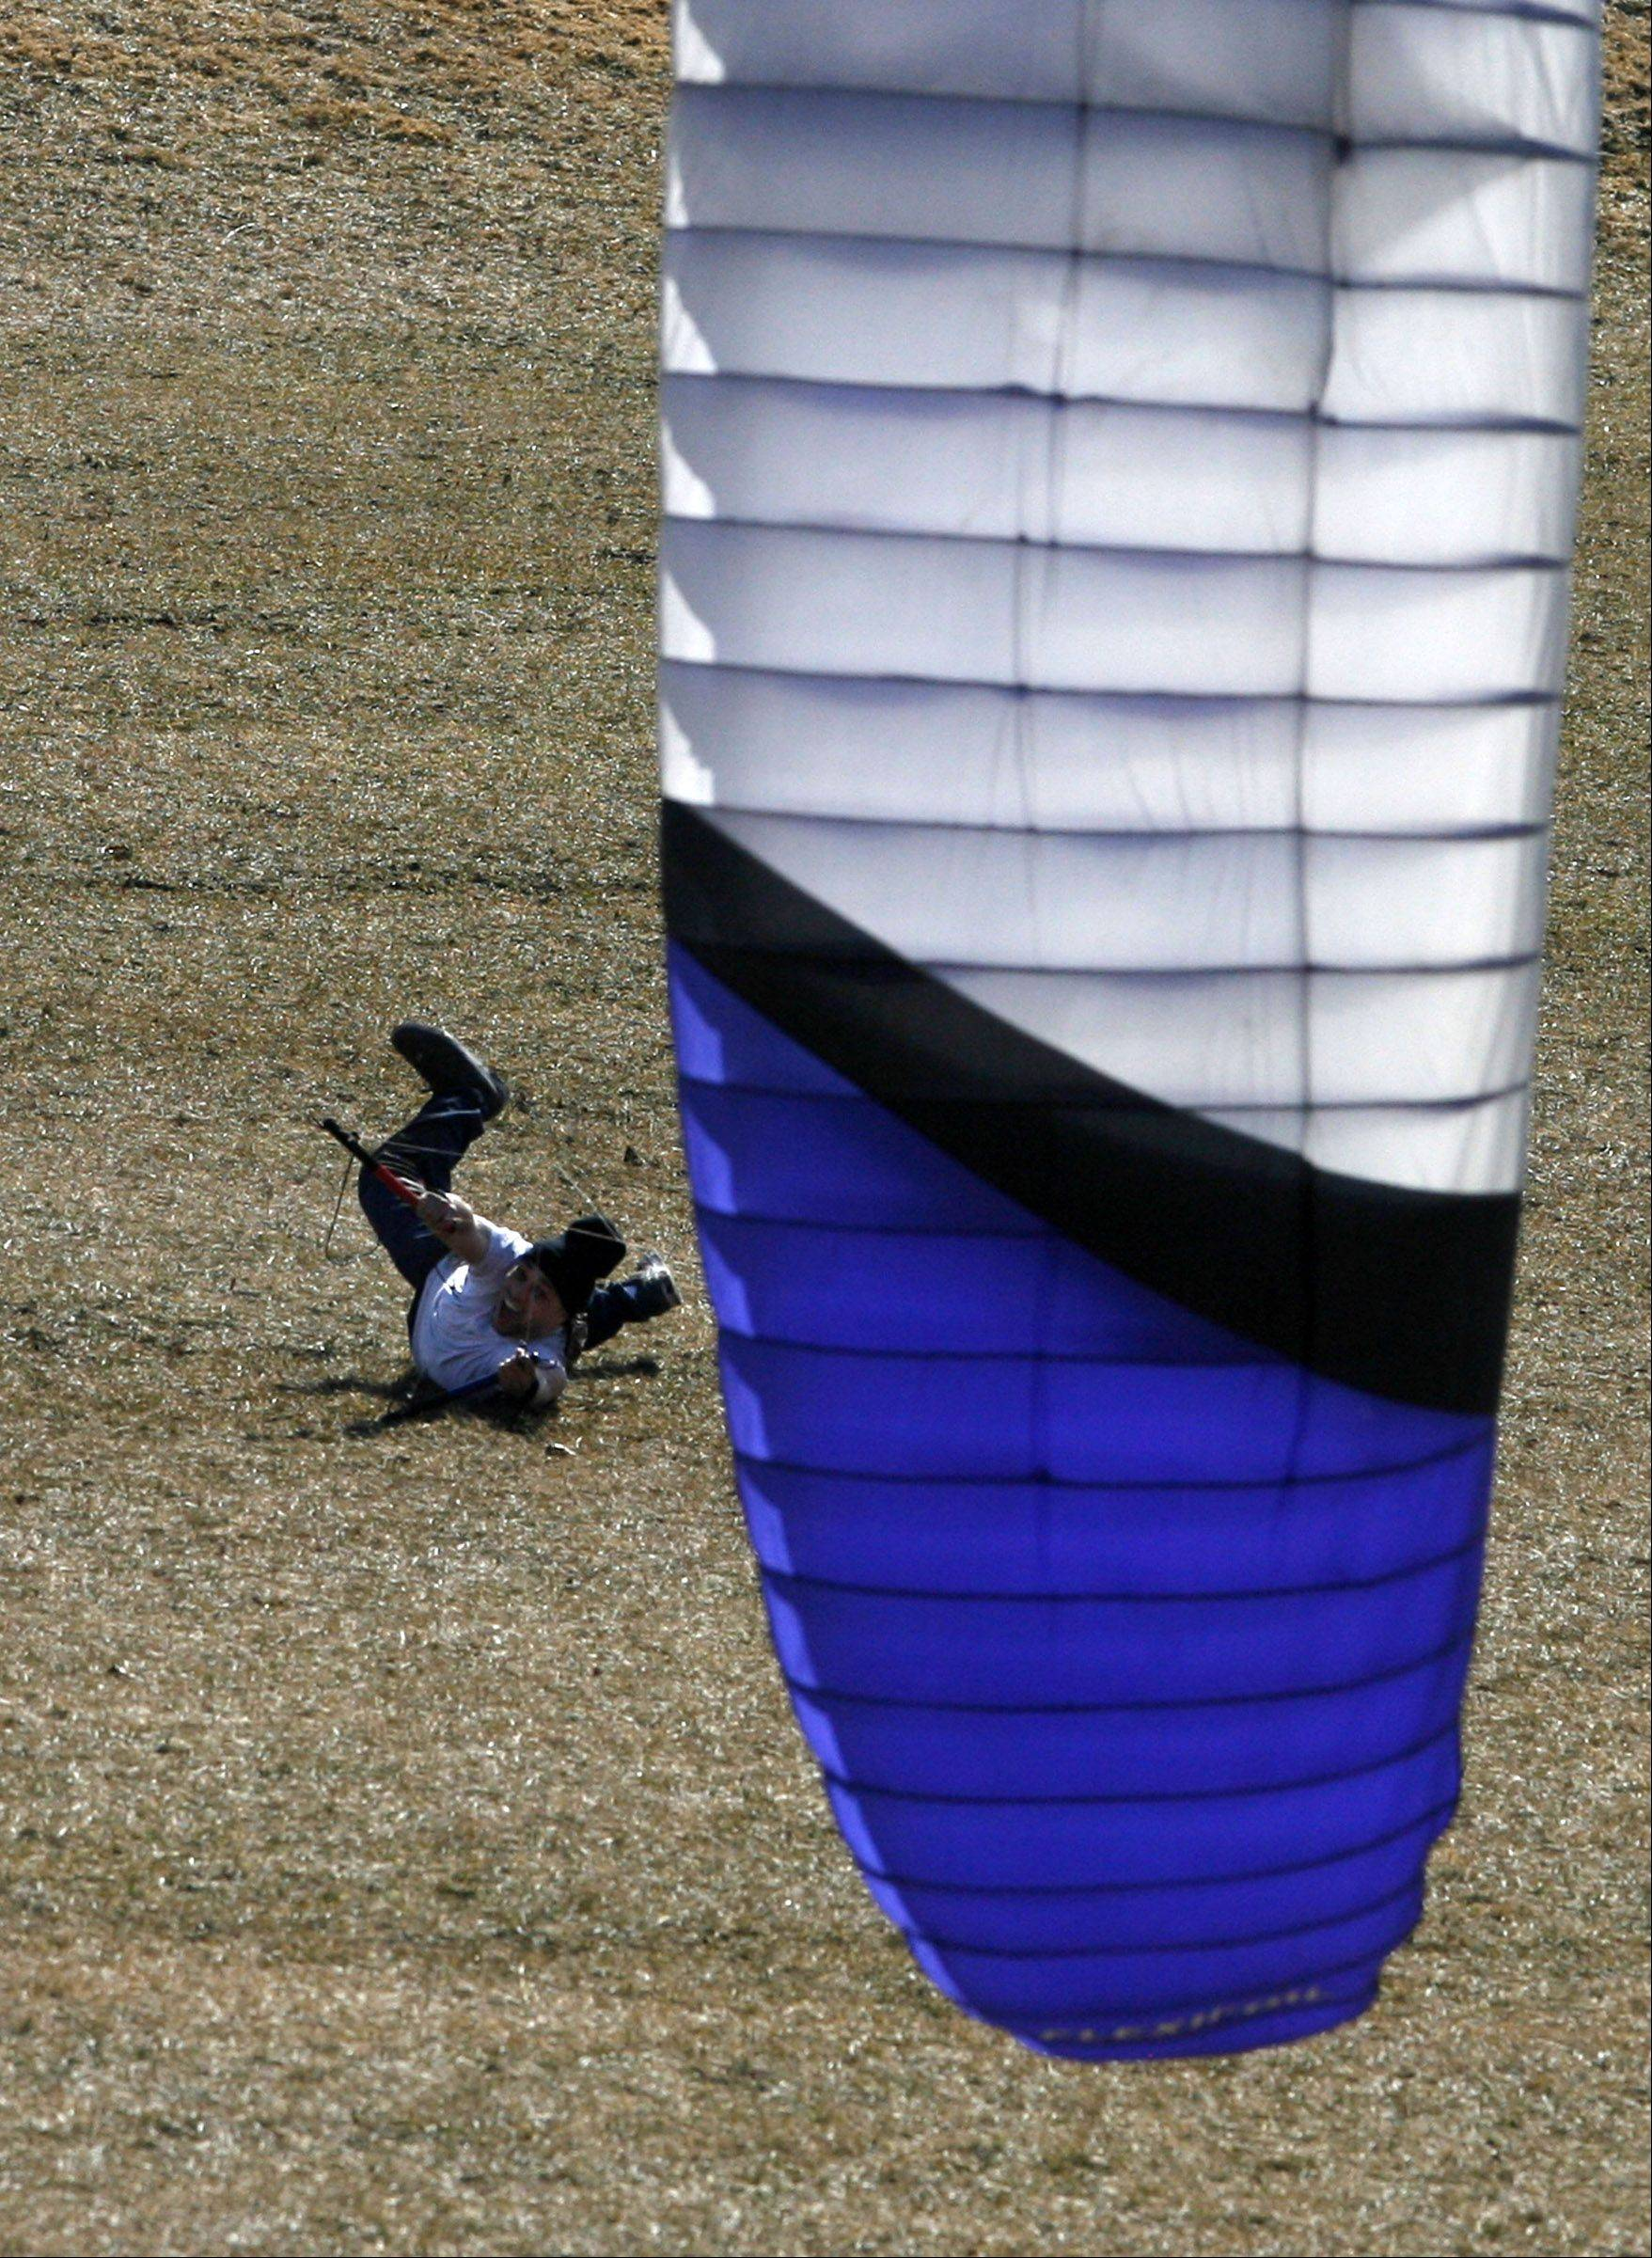 Frank Spencer of Des Plaines is dragged 30-feet by a 20-foot-wide kite as he attempts power kiting at Melas Park in Mount Prospect on Tuesday, March 6th. The $500 kite is owned by Spencer's friend Tom Zajkowski of Des Plaines who said the idea of the sport is to get off the ground.